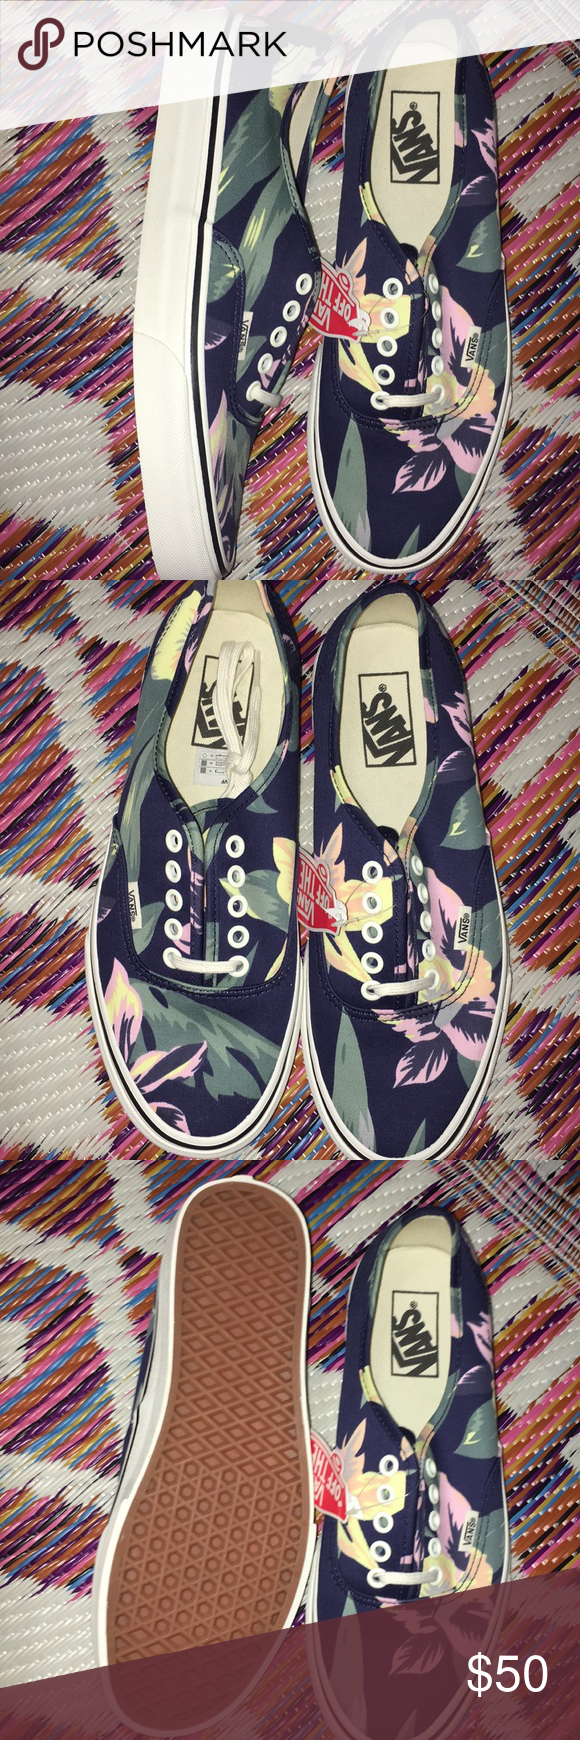 9a583f1377 Authentic Vintage floral lace up Vans Authentic lace up vintage Vans. Brand  new in original box. Navy blue with pink and yellow flowers. Green leaves.